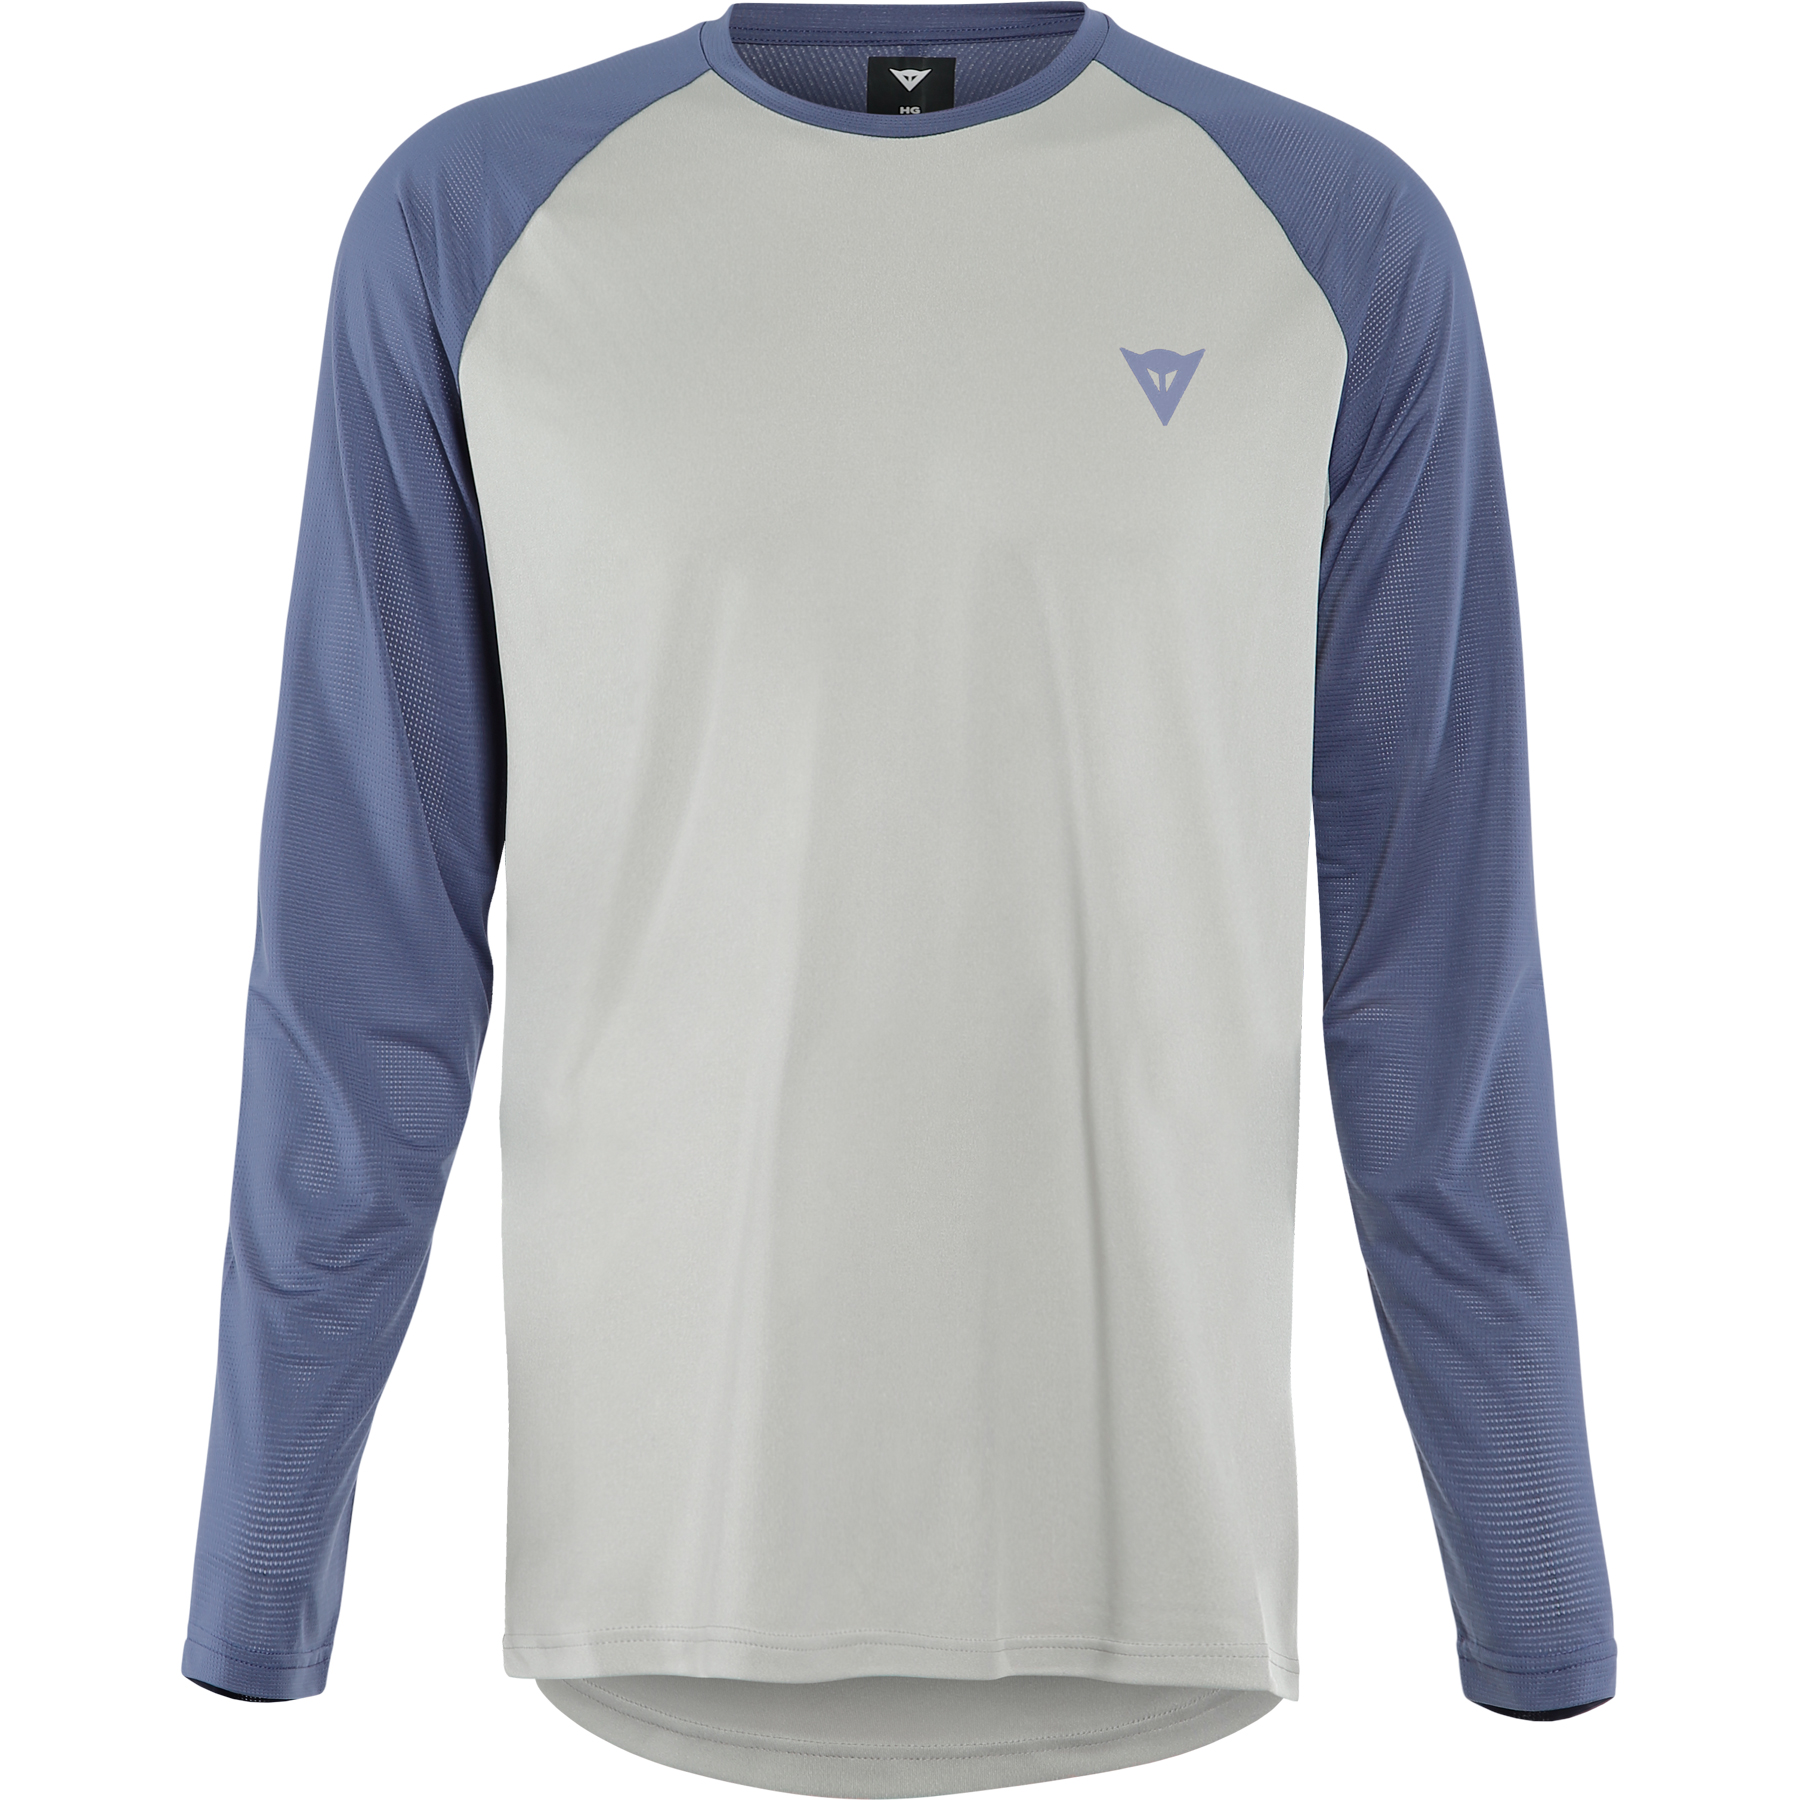 Picture of Dainese HG Tsingy Long-Sleeve Jersey - light gray/blue